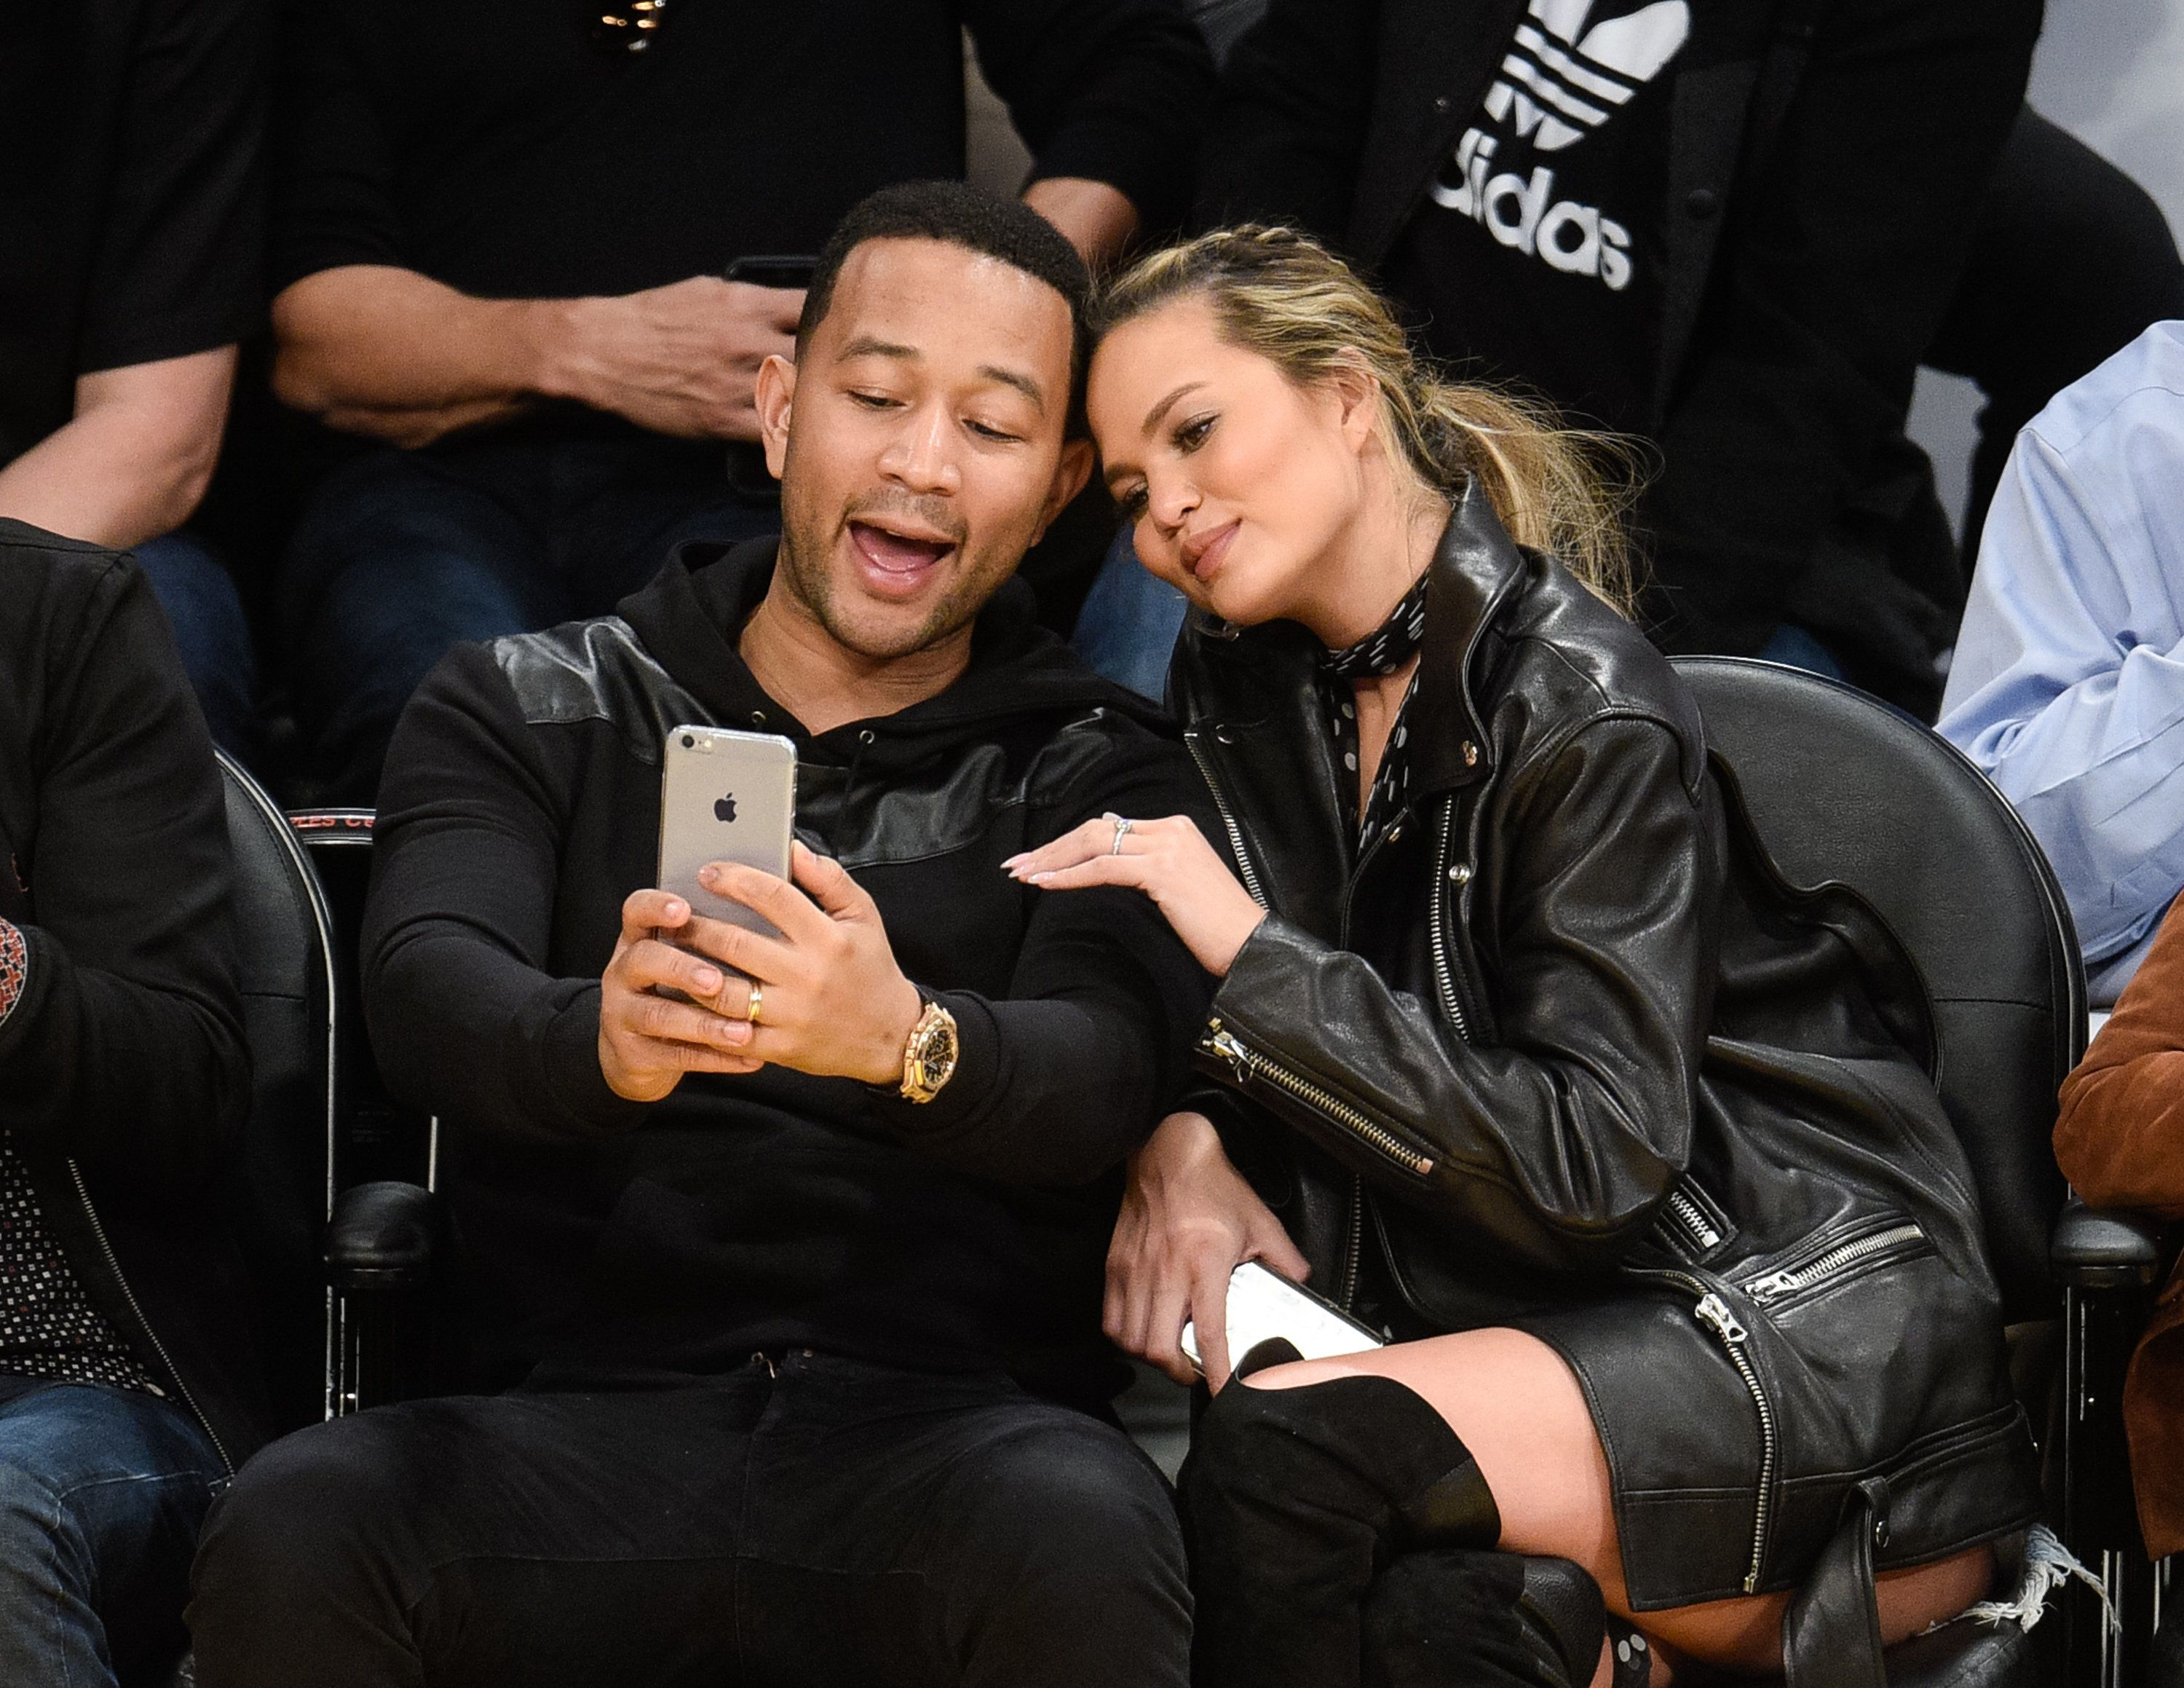 LOS ANGELES, CA - MARCH 10:  John Legend and Chrissy Teigen attend a basketball game between the Cleveland Cavaliers and the Los Angeles Lakers at Staples Center on March 10, 2016 in Los Angeles, California.  (Photo by Noel Vasquez/GC Images)